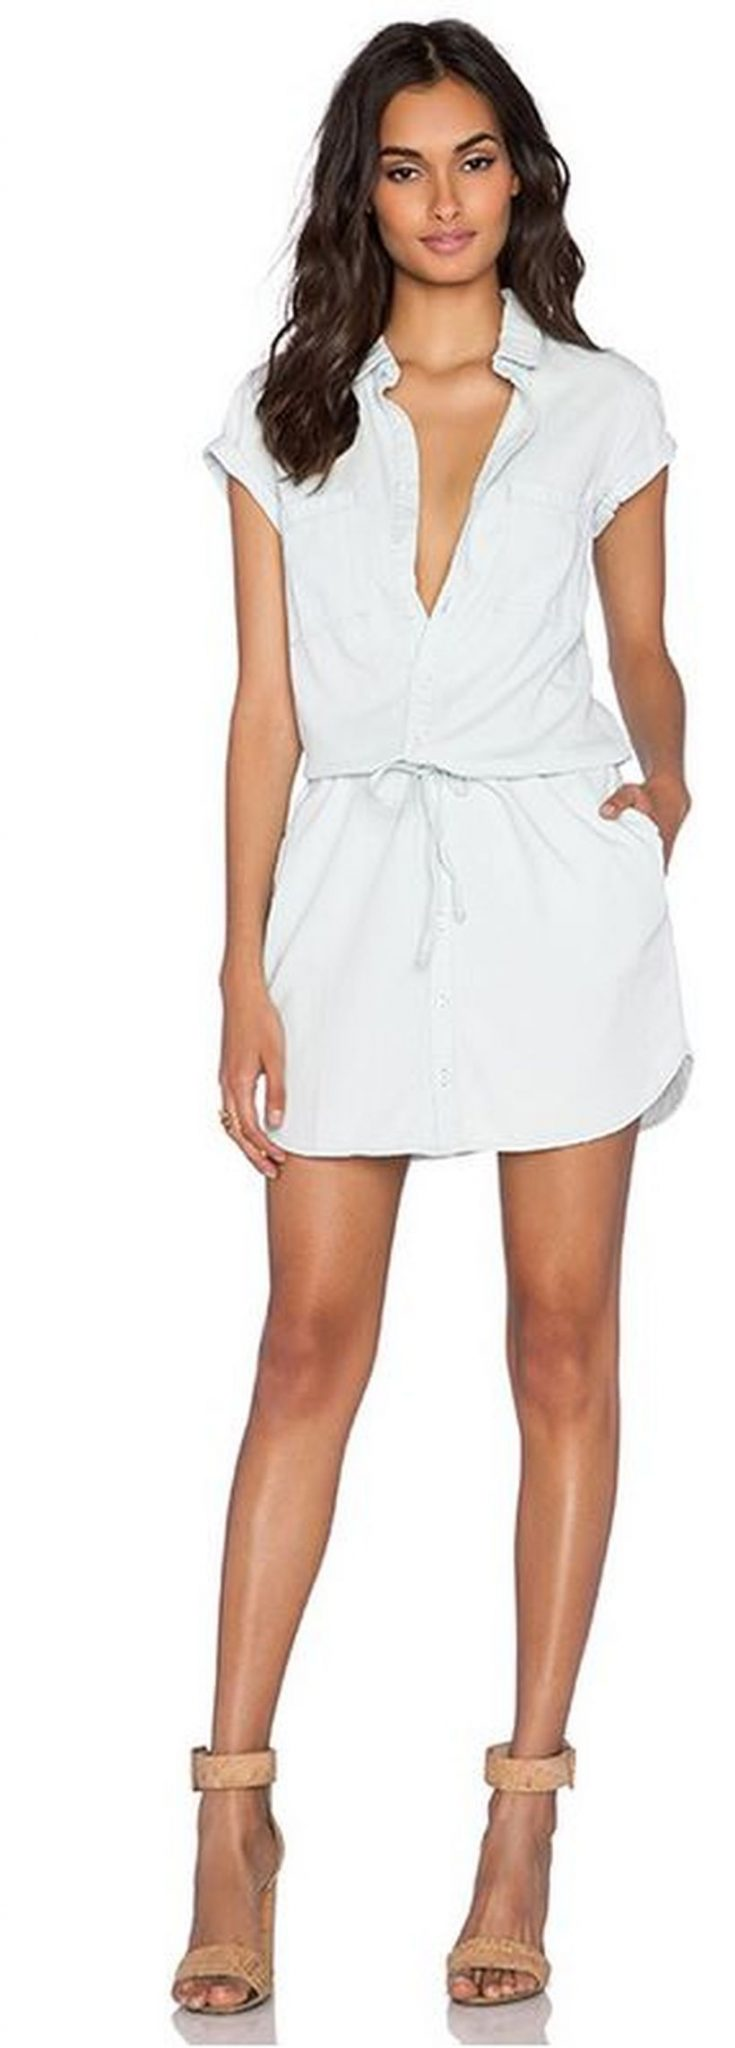 Stunning white shirtdresses outfits 5